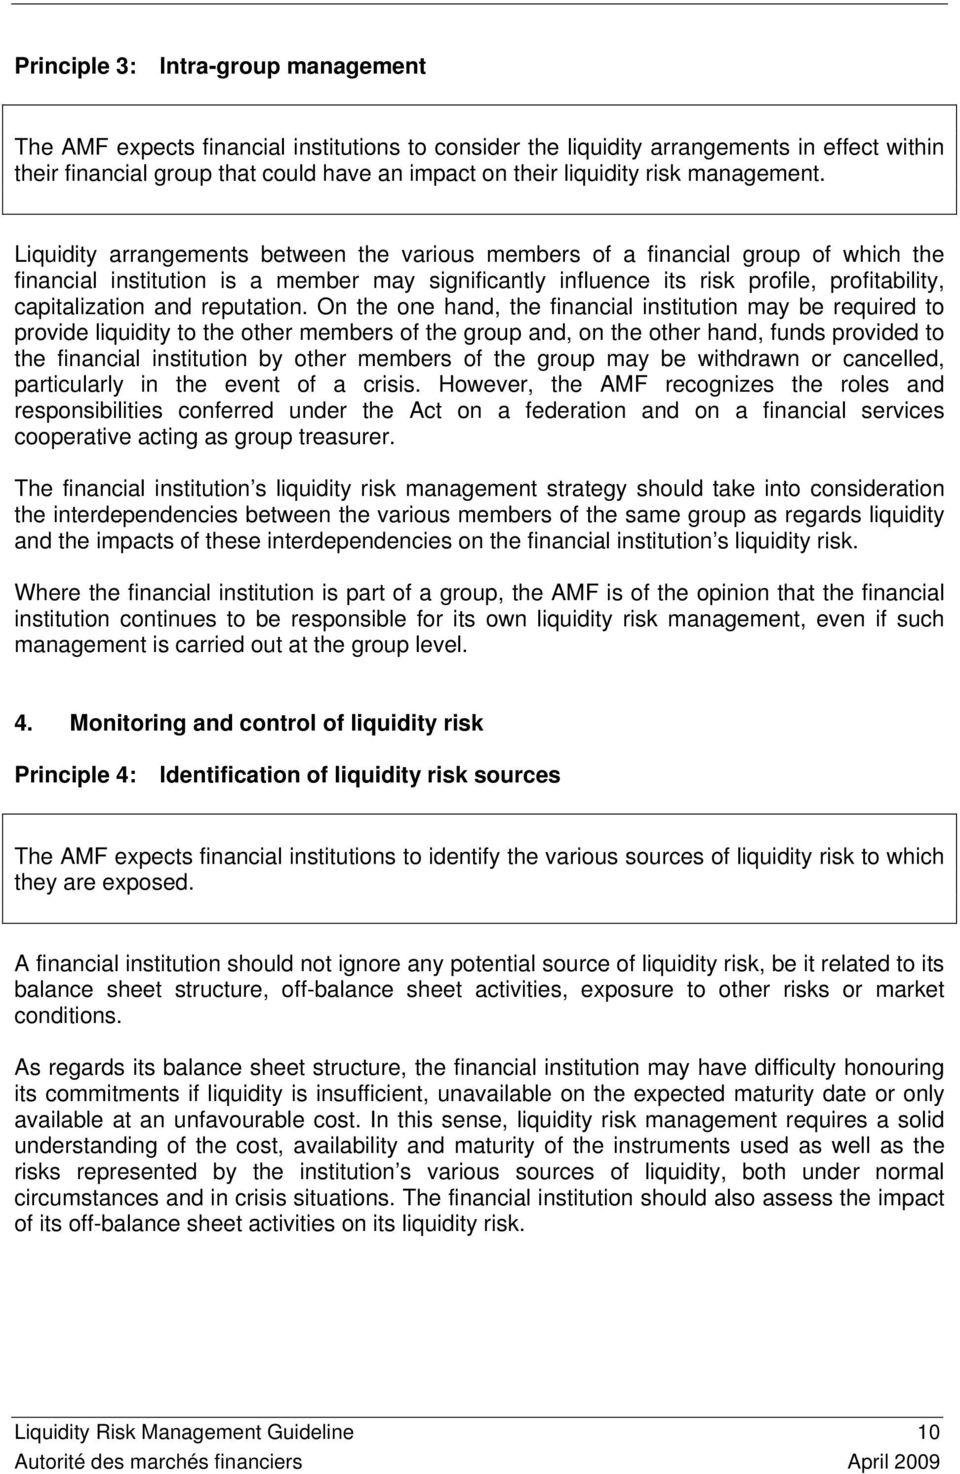 Liquidity arrangements between the various members of a financial group of which the financial institution is a member may significantly influence its risk profile, profitability, capitalization and